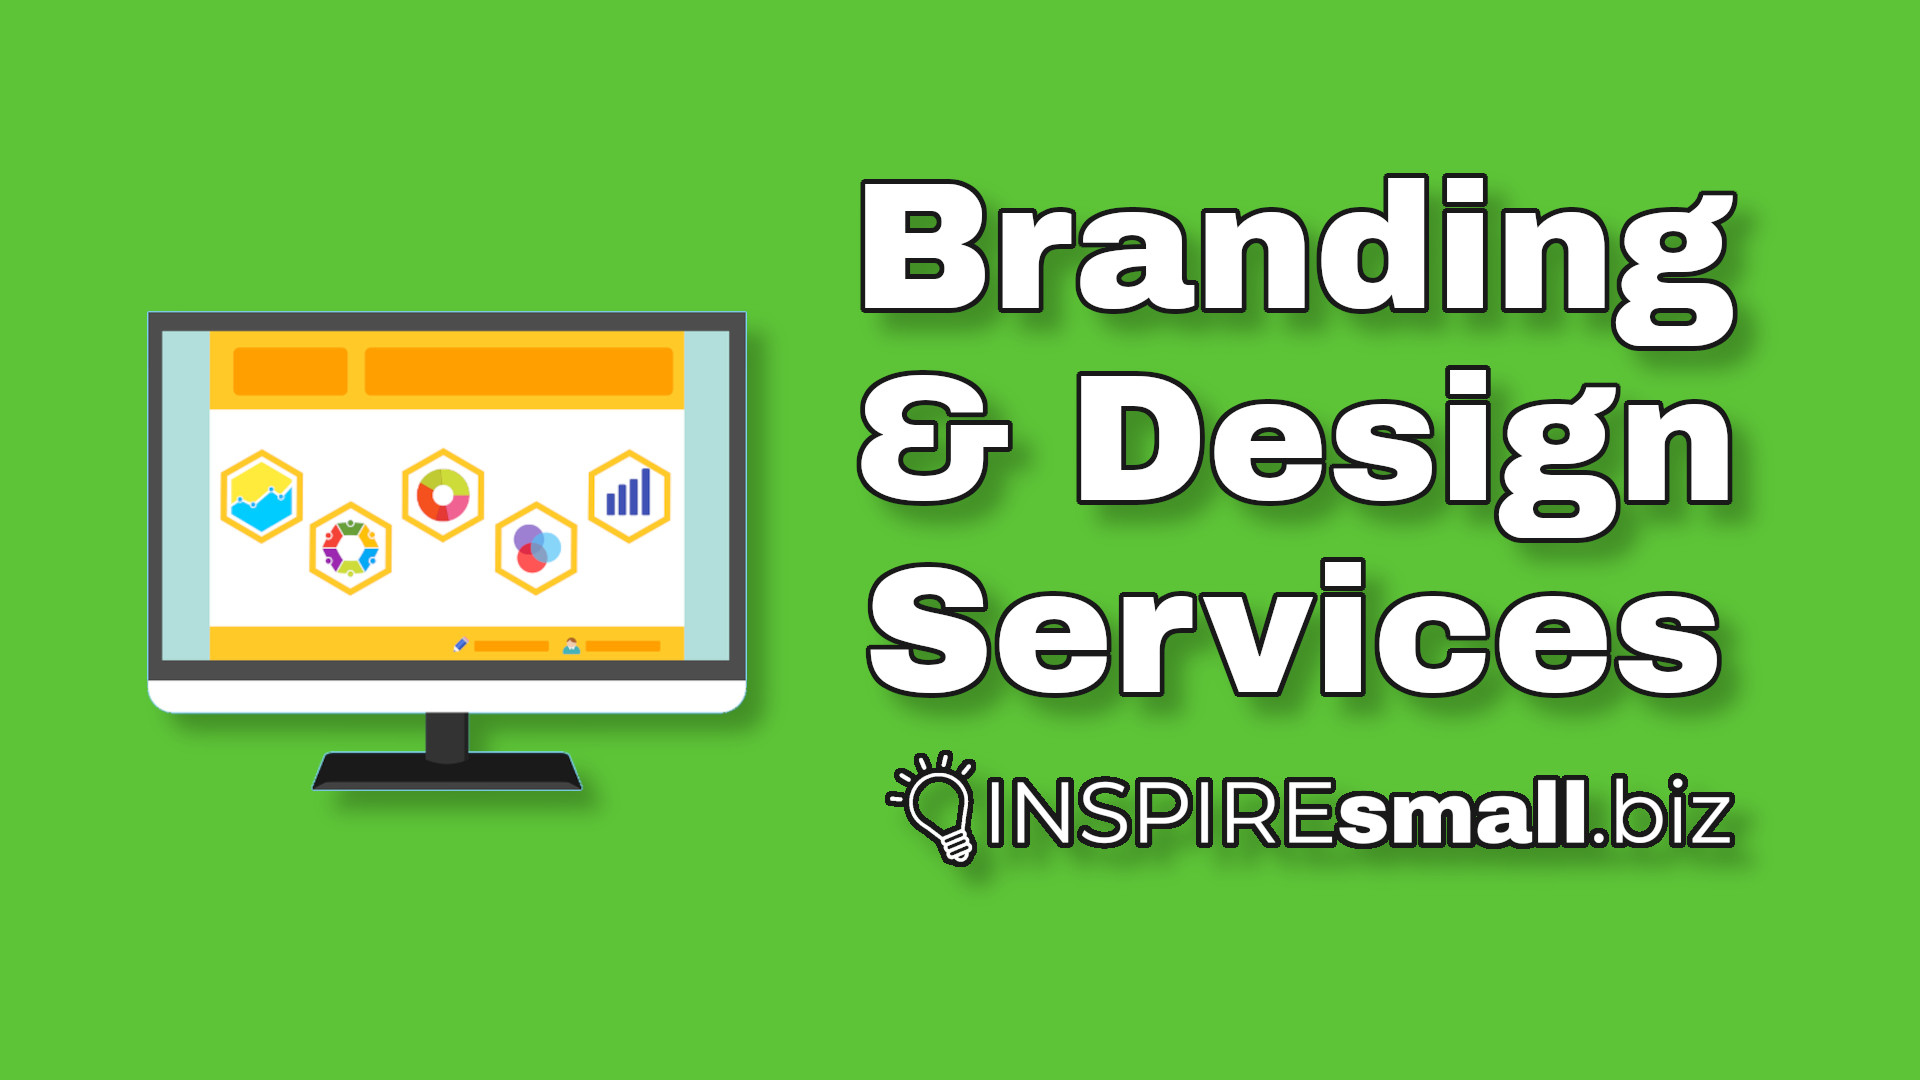 Branding and Design Services from INSPIREsmall.biz over a green background with a desktop featuring some hexagonal gold shapes.